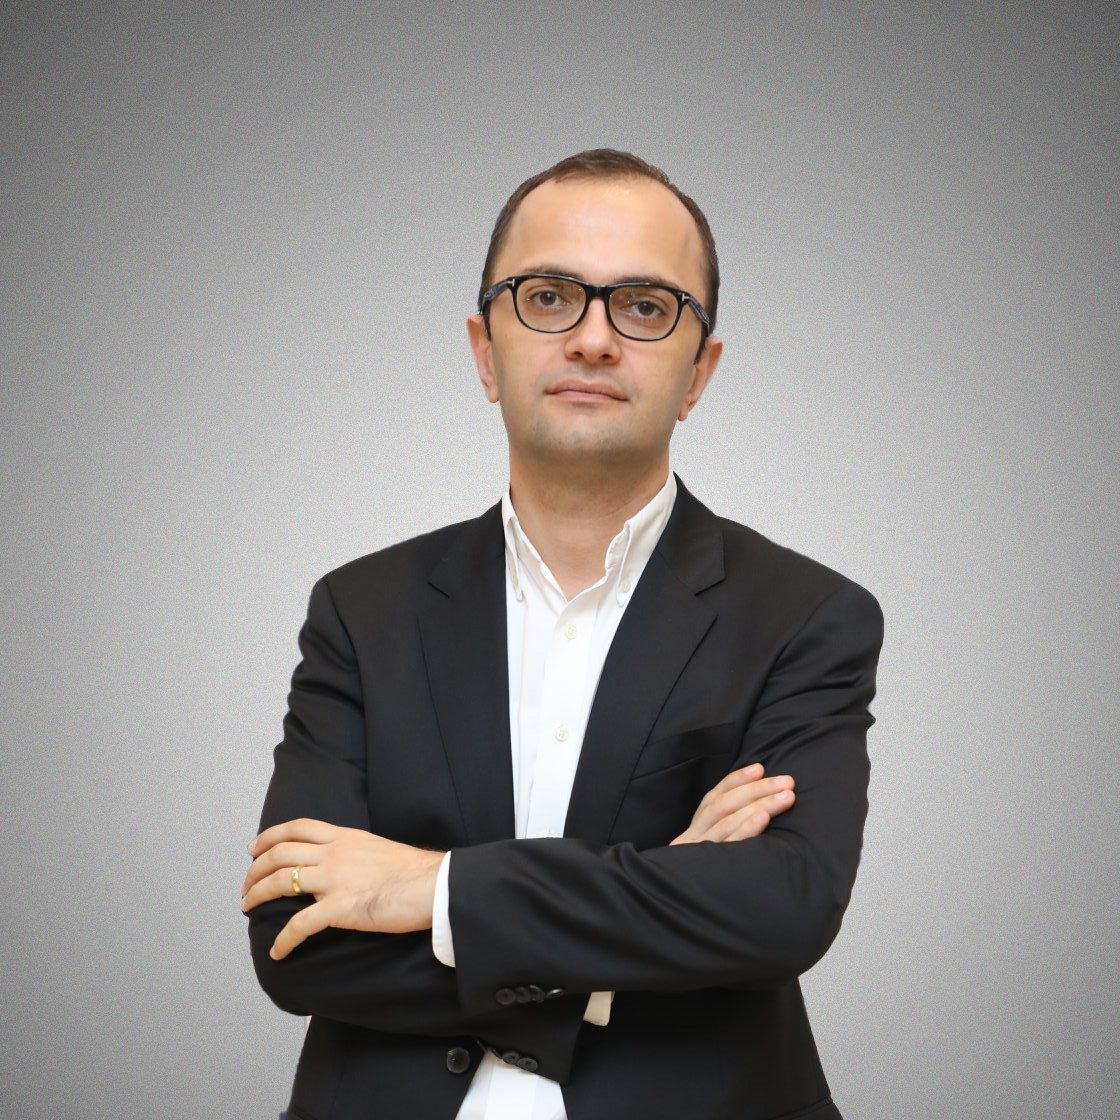 Arsen Safaryan - Head of BIM and Digital Construction at ALEC,